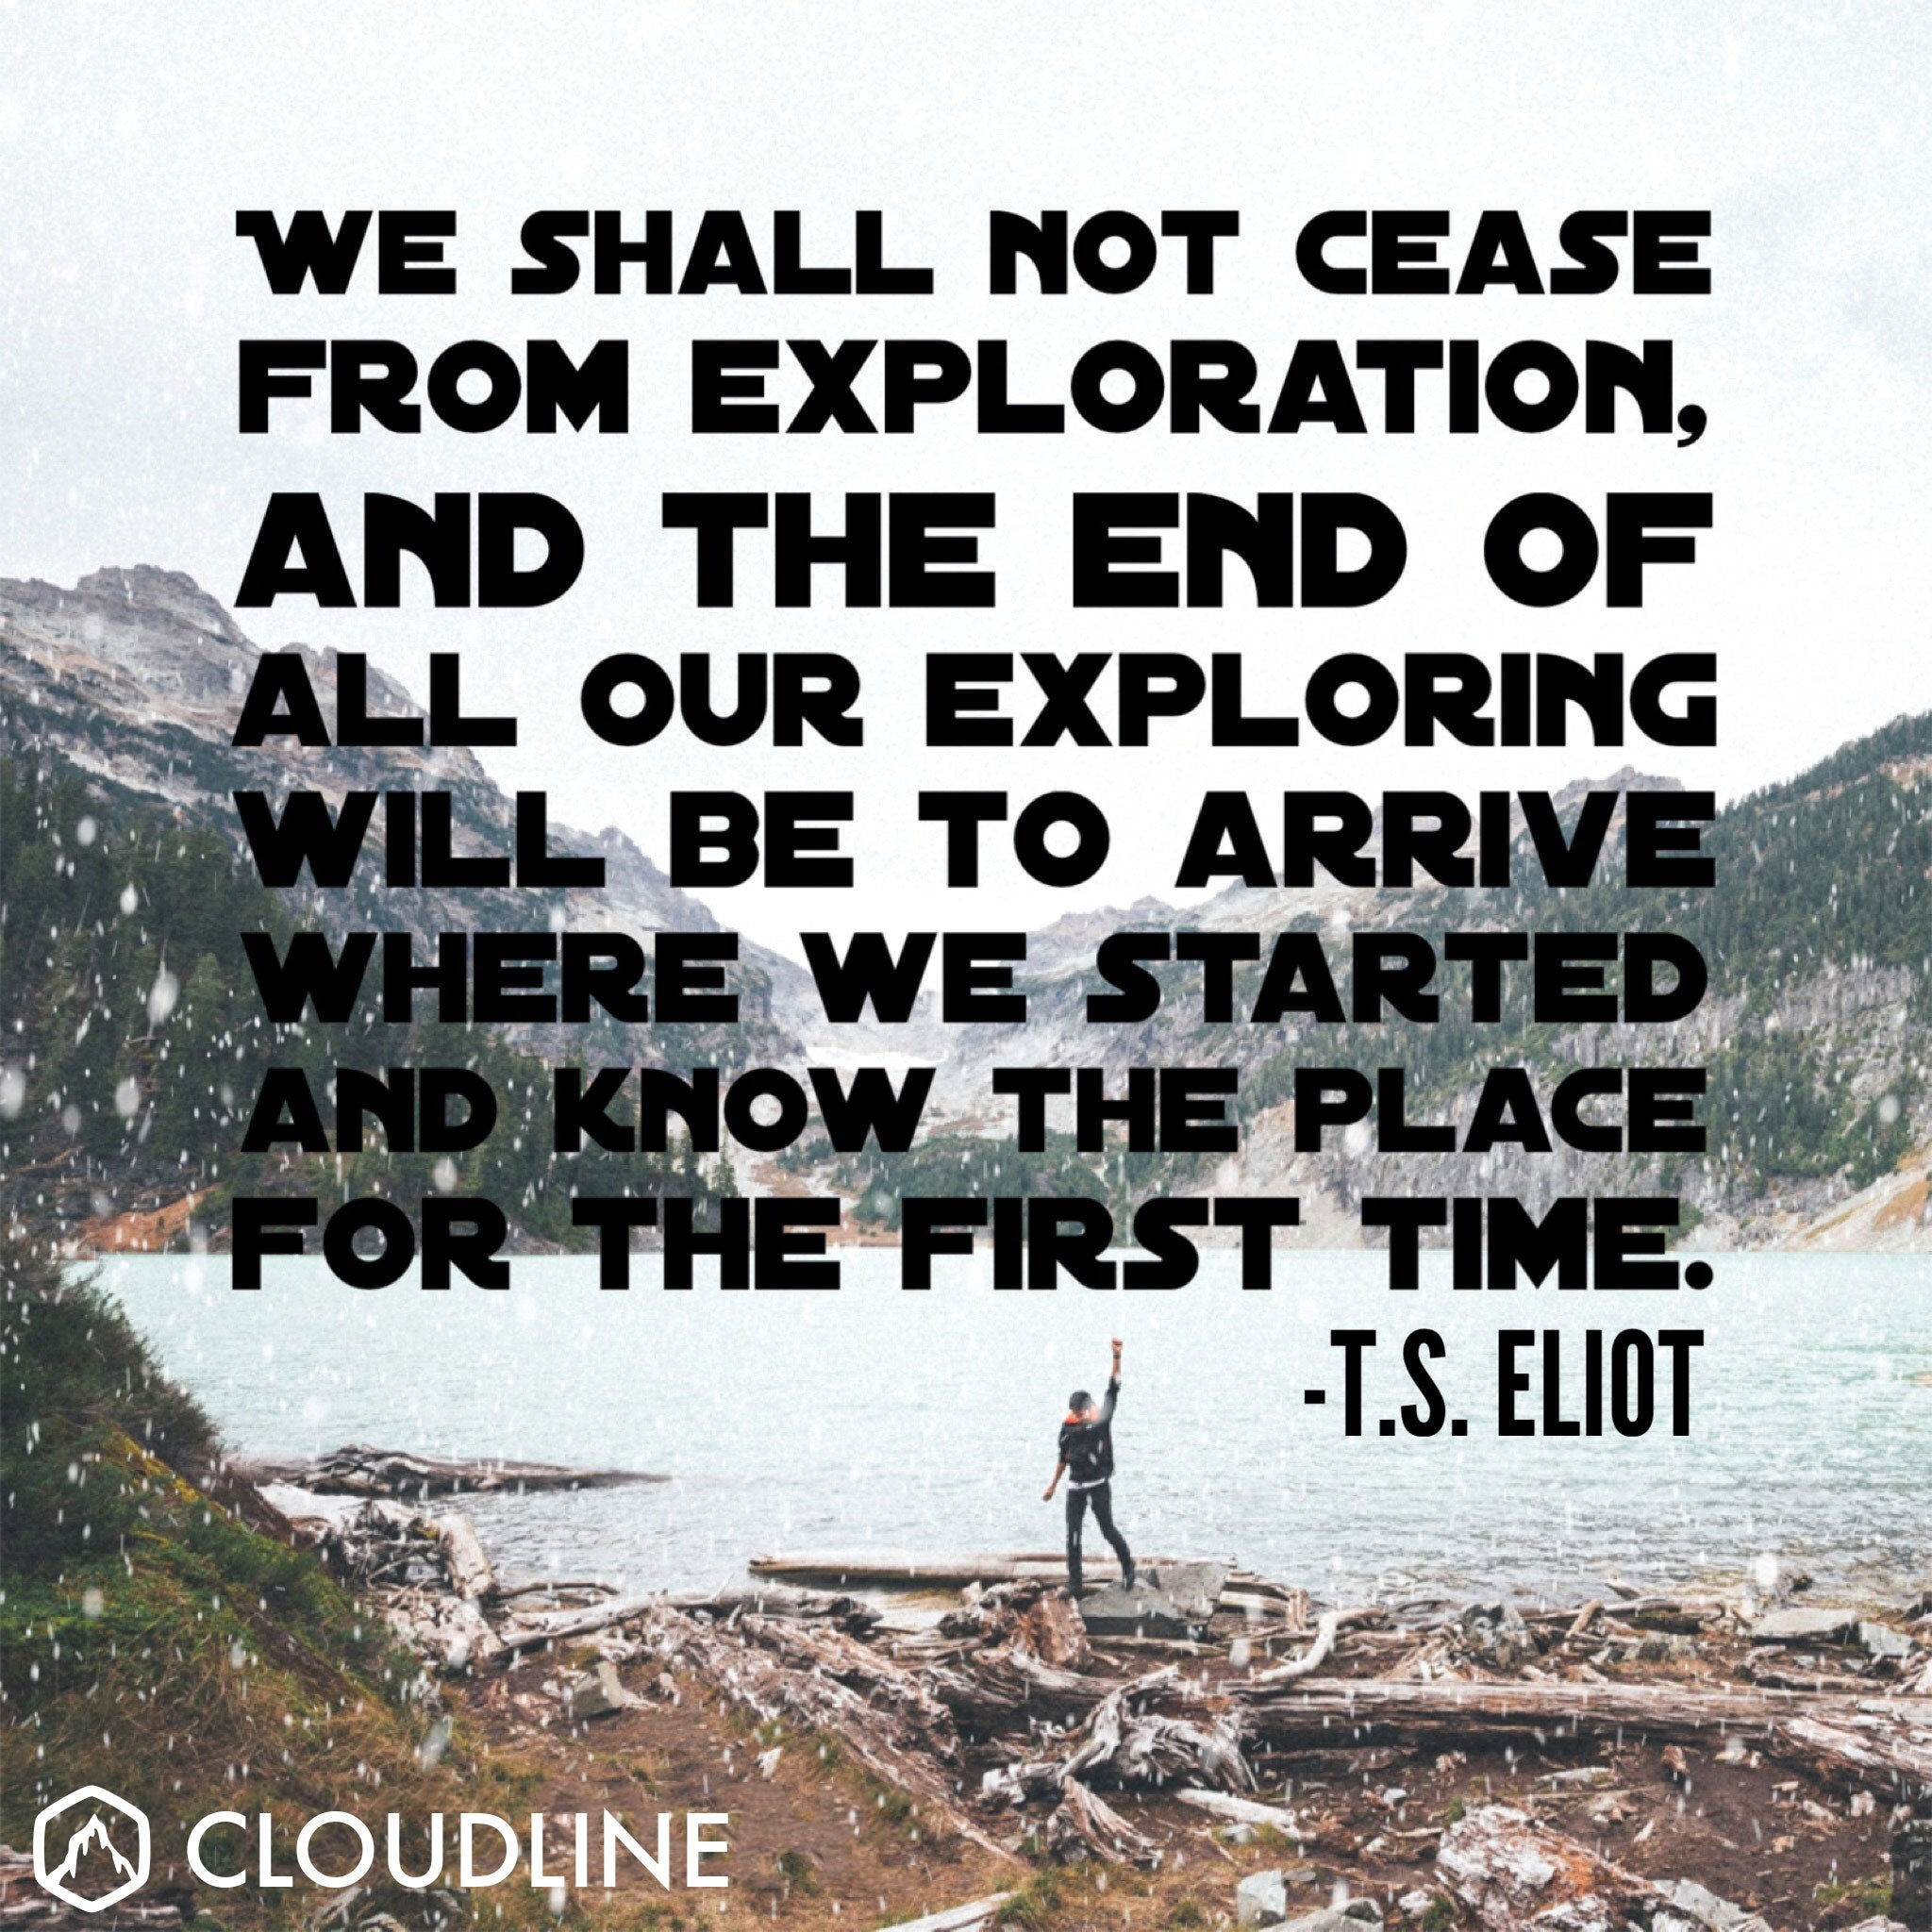 """We shall not cease from exploration, and then end of all our exploring will be to arrive where we started and know the place for the first time."" - T.S Eliot"